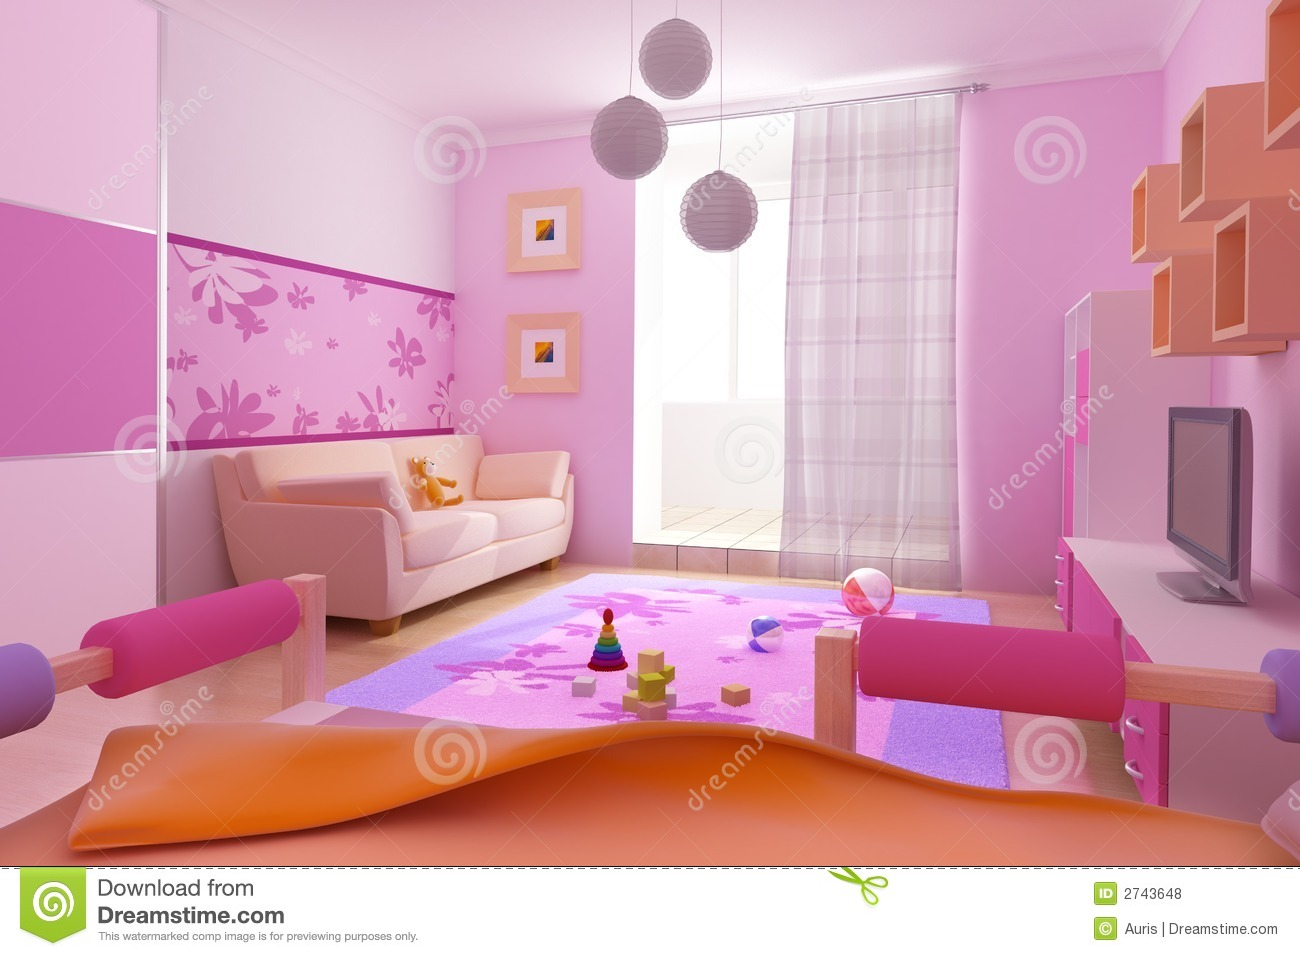 children's room interior royalty free stock photography - image